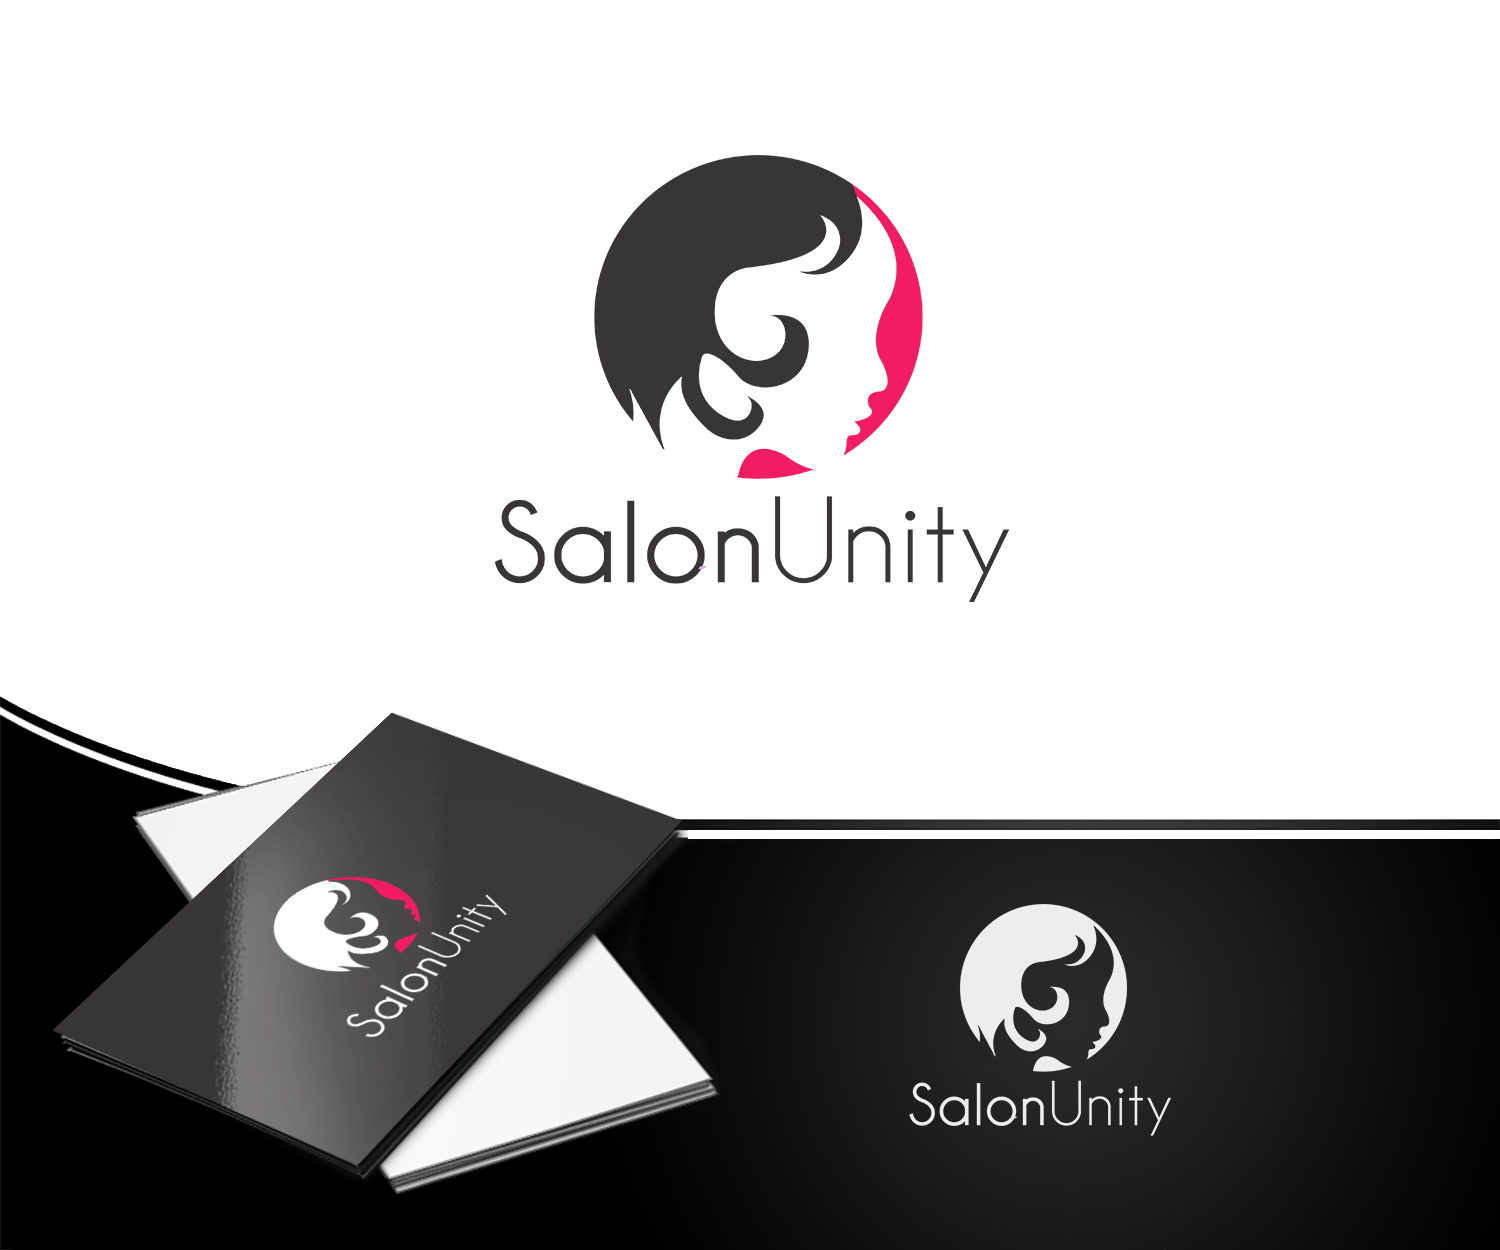 Salon Creation Modern Elegant Hair And Beauty Logo Design For Salon Unity By